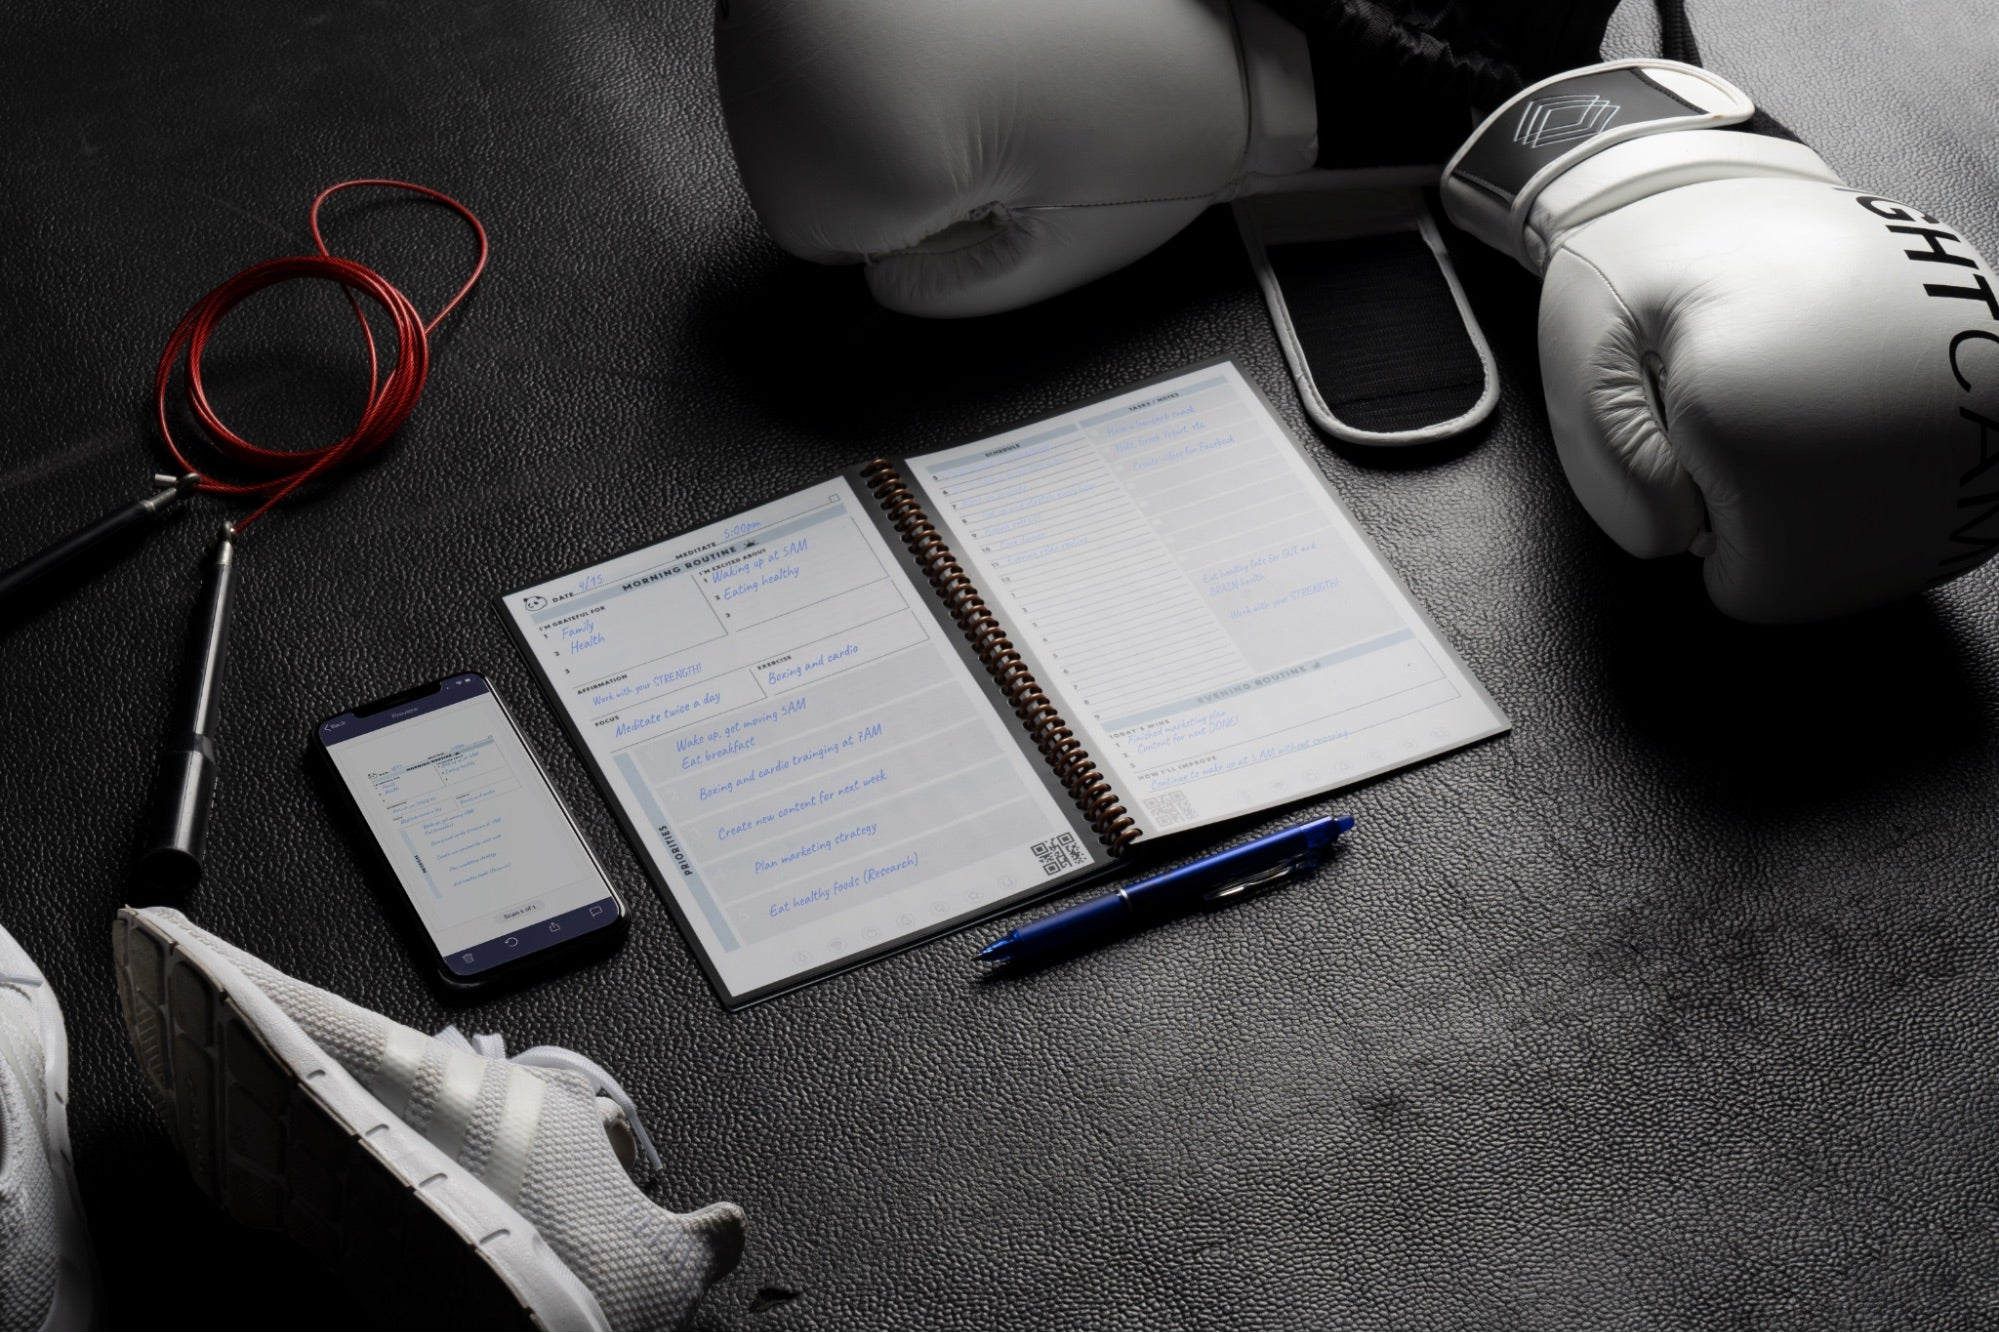 A Rocketbook notebook along with a smartphone displaying its app backdropped with workout gear like boxing gloves and running shoes.